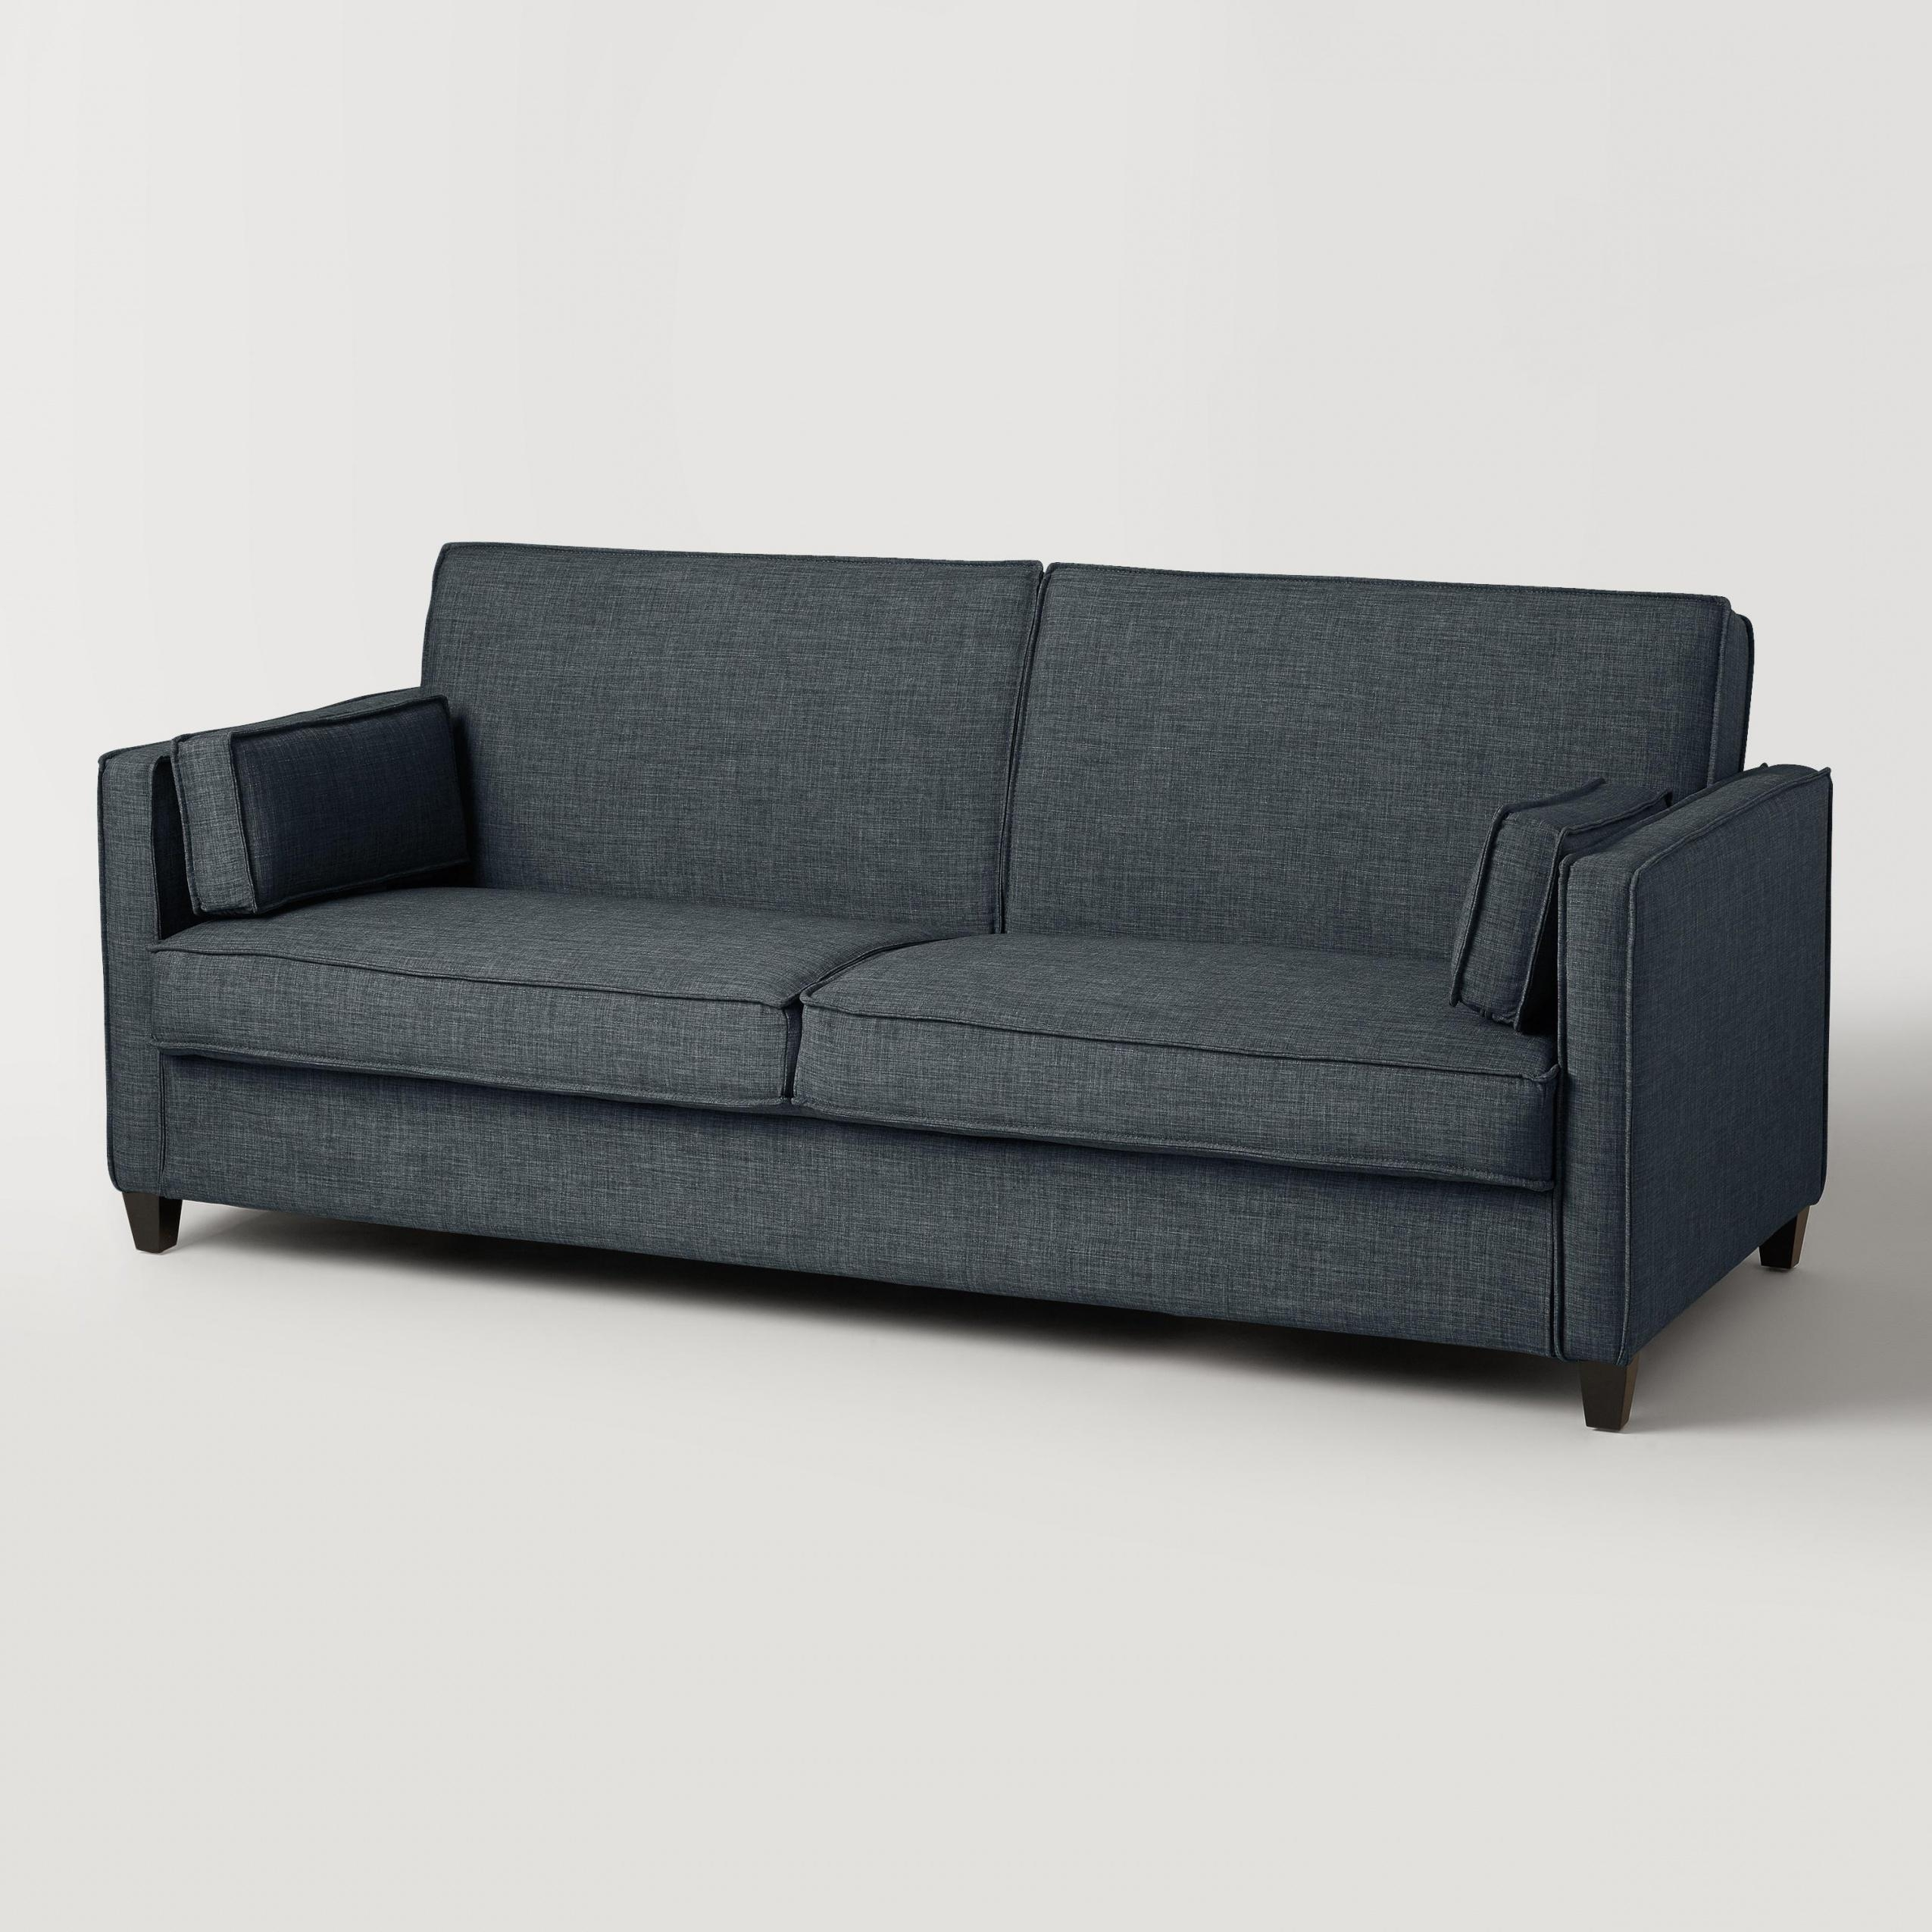 Sofa Bed Nyc Cheap – Elite Home With Cheap Sofa Beds (View 7 of 20)